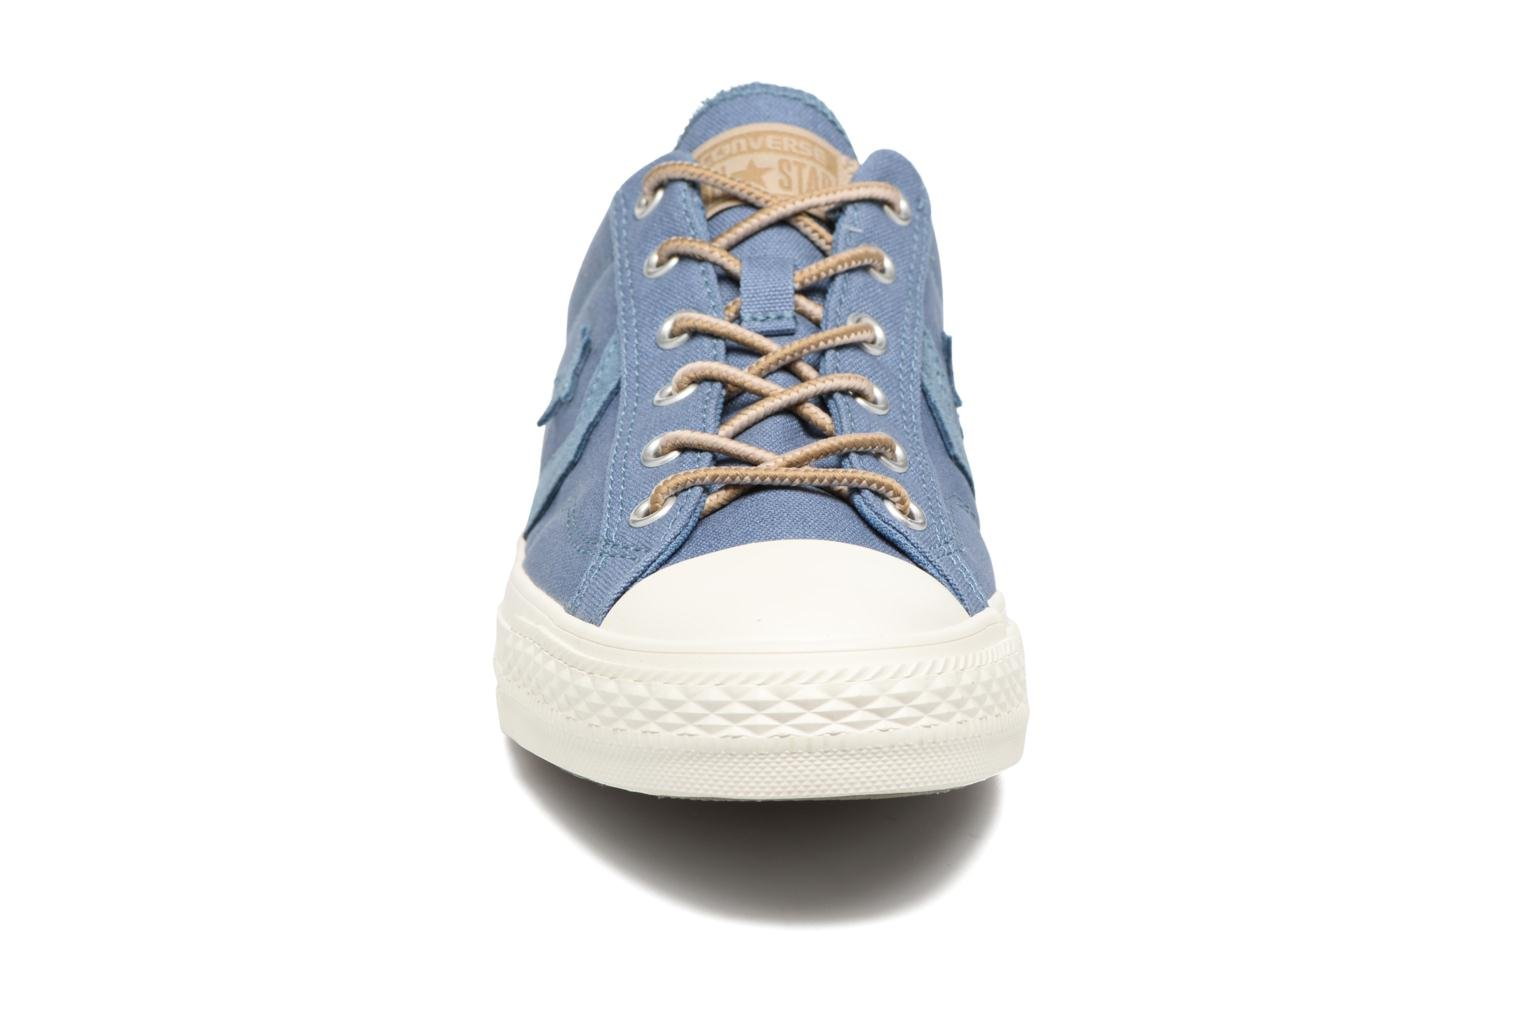 Star Player Workwear Ox M Blue Coast/Vintage Khaki/Sand Dune